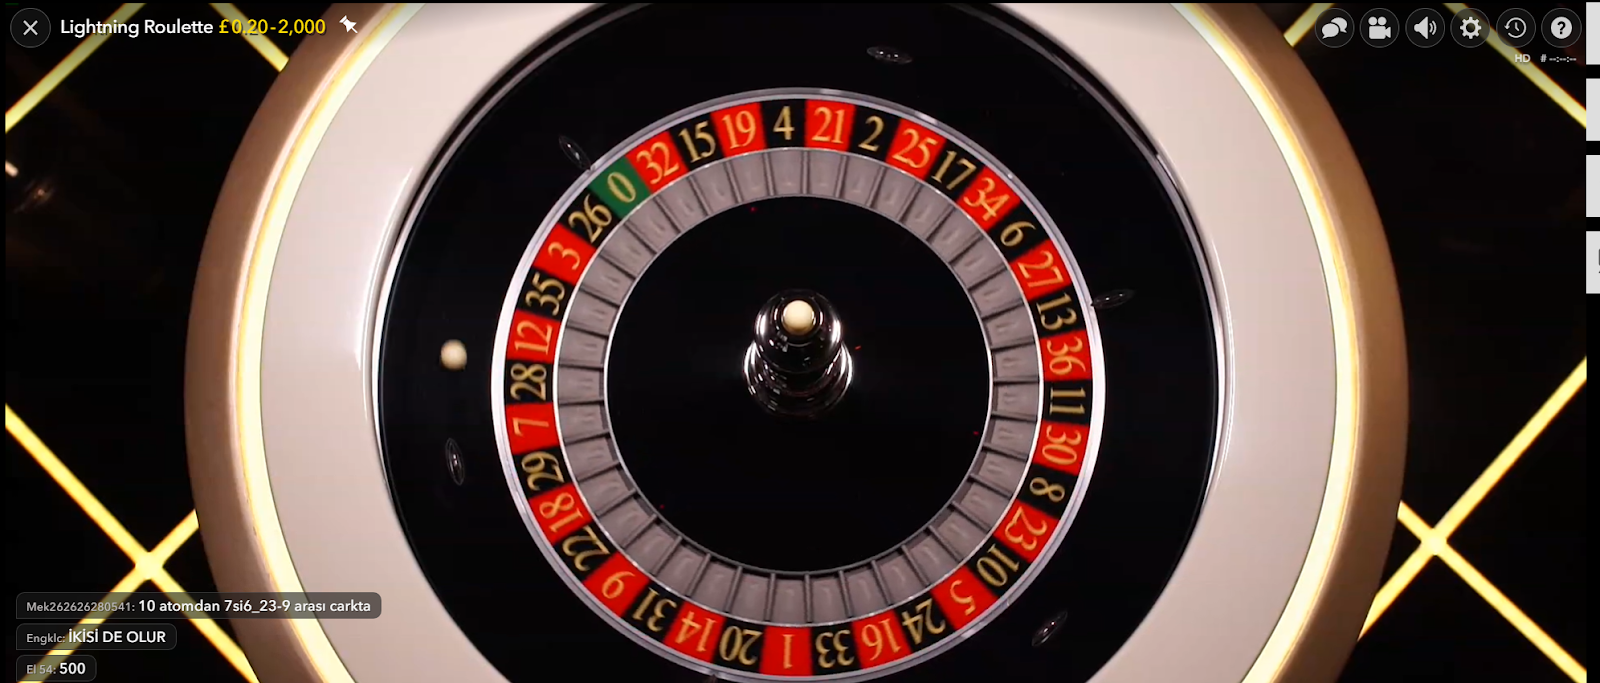 Lightning Roulette is one of the great roulette games you can play at Casoola Casino